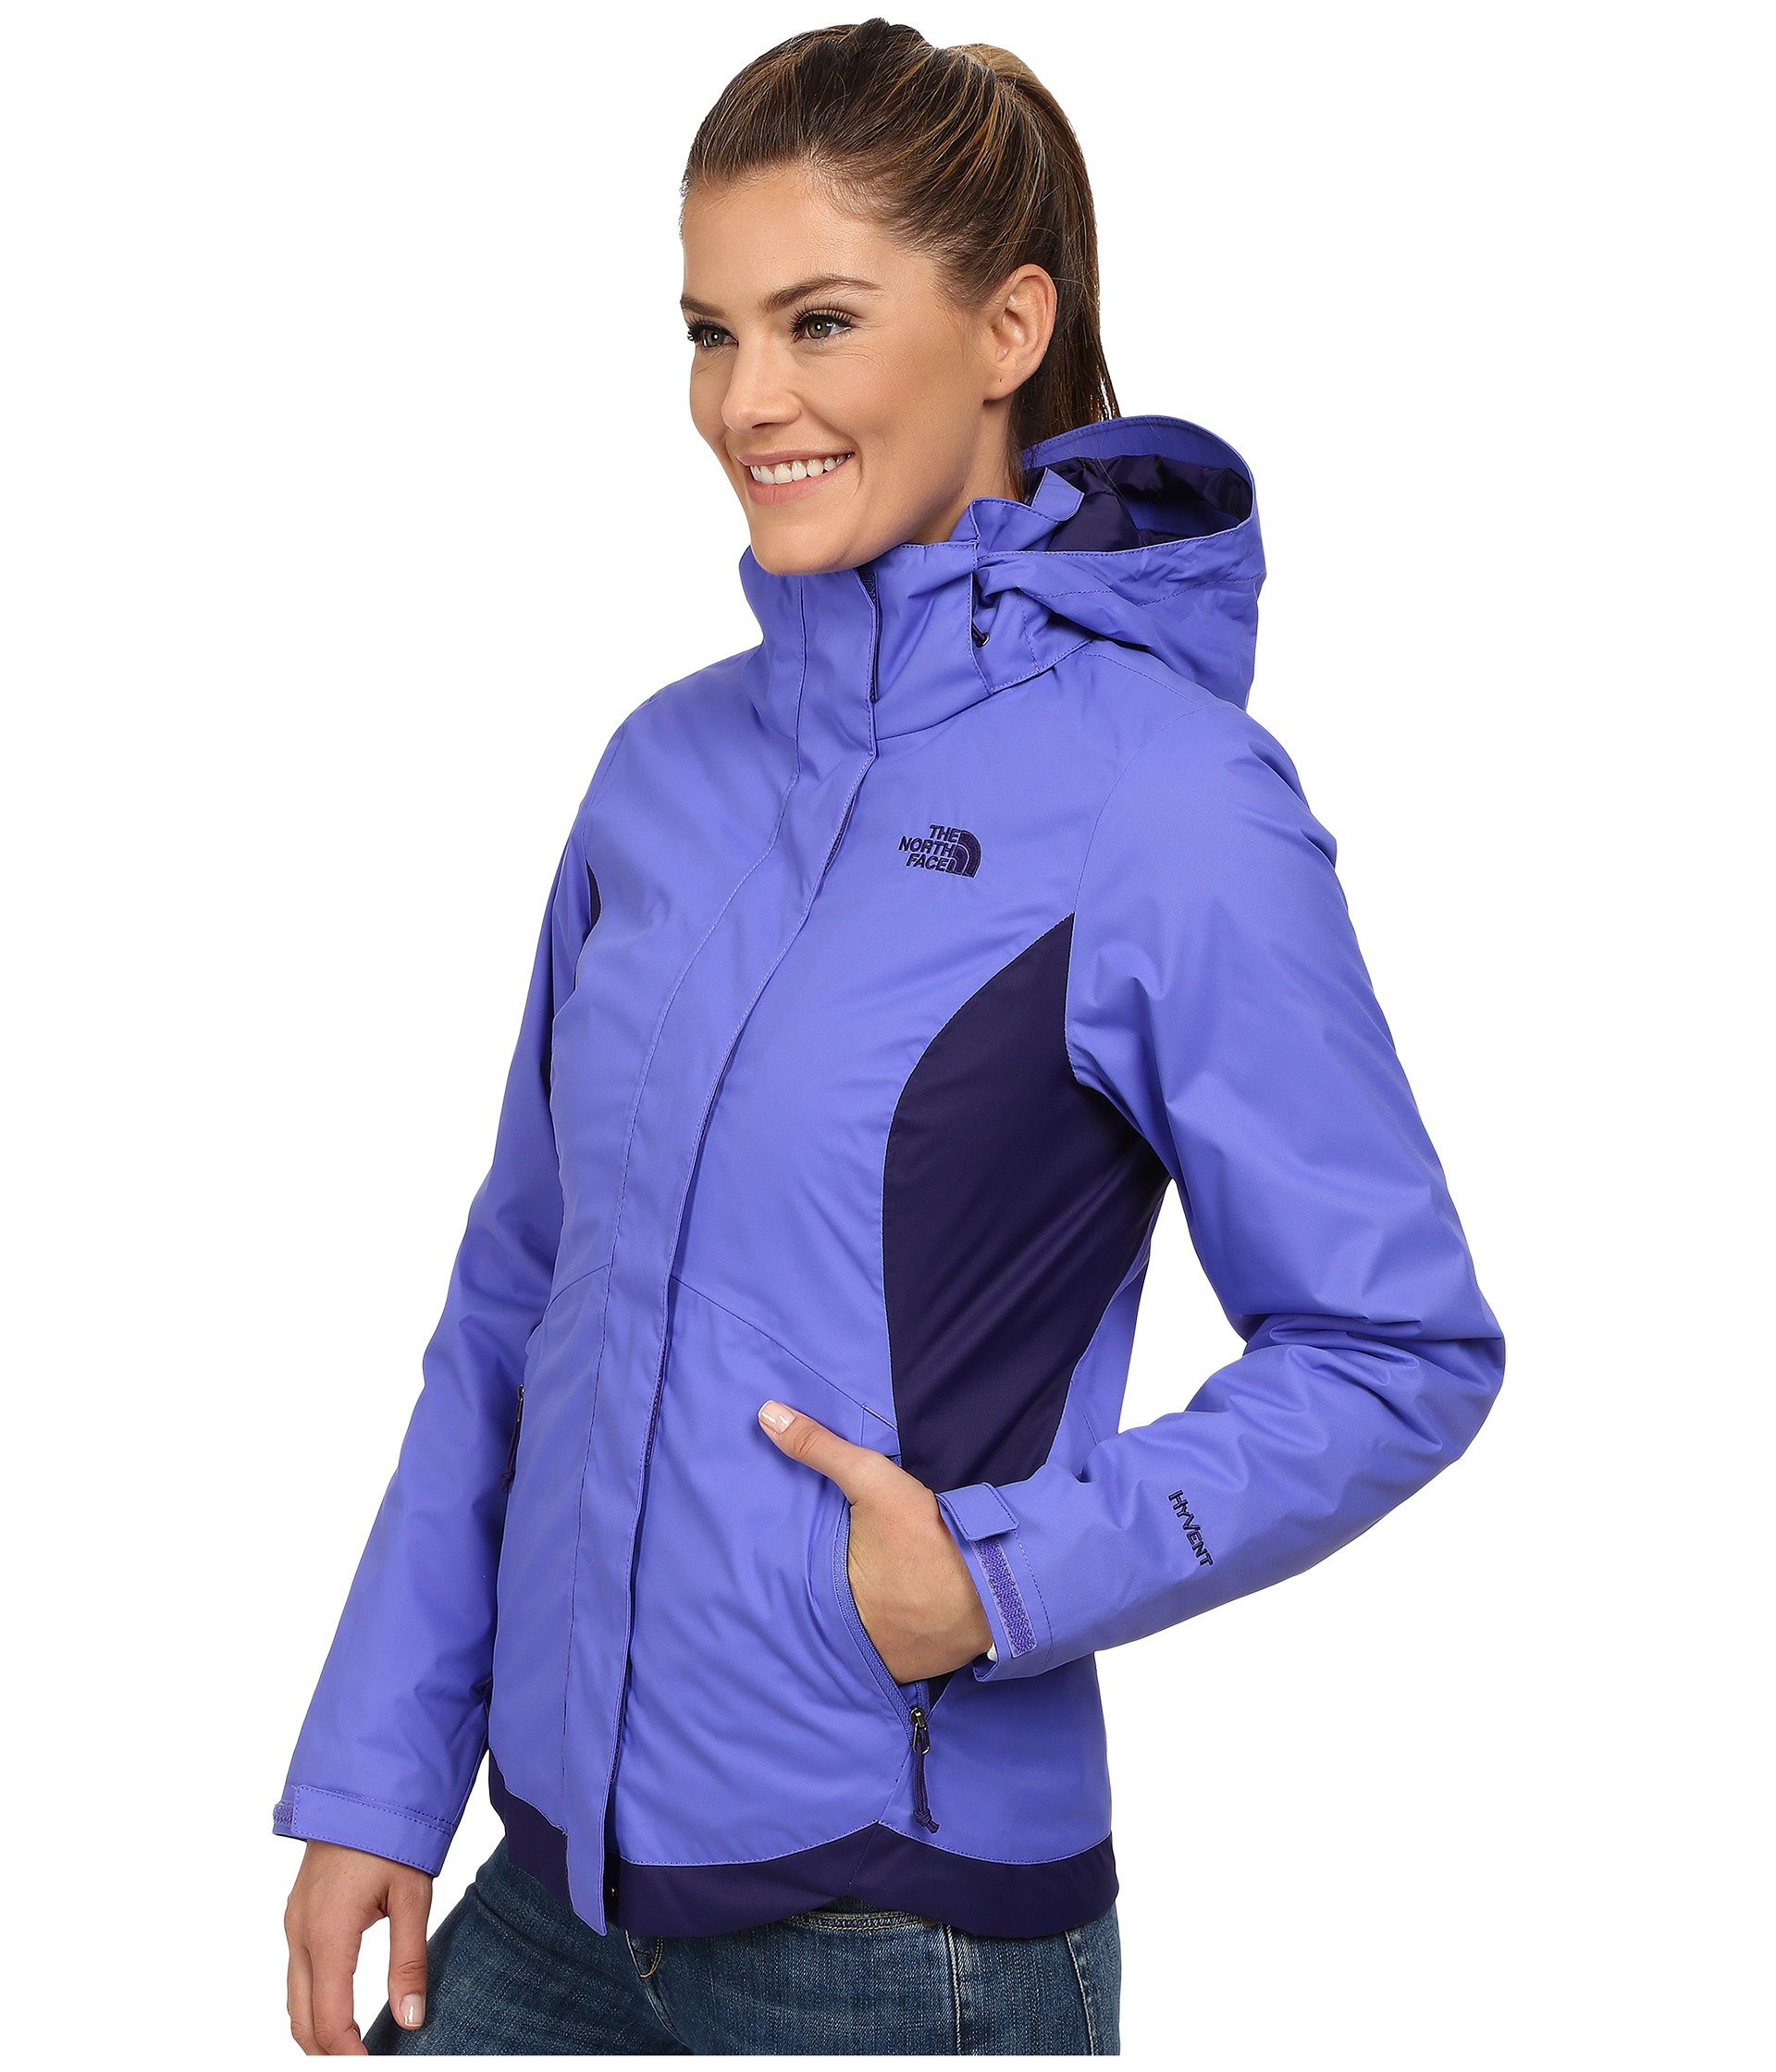 80d166cb4b00 Lyst - The North Face Mossbud Swirl Triclimate® Jacket in Purple